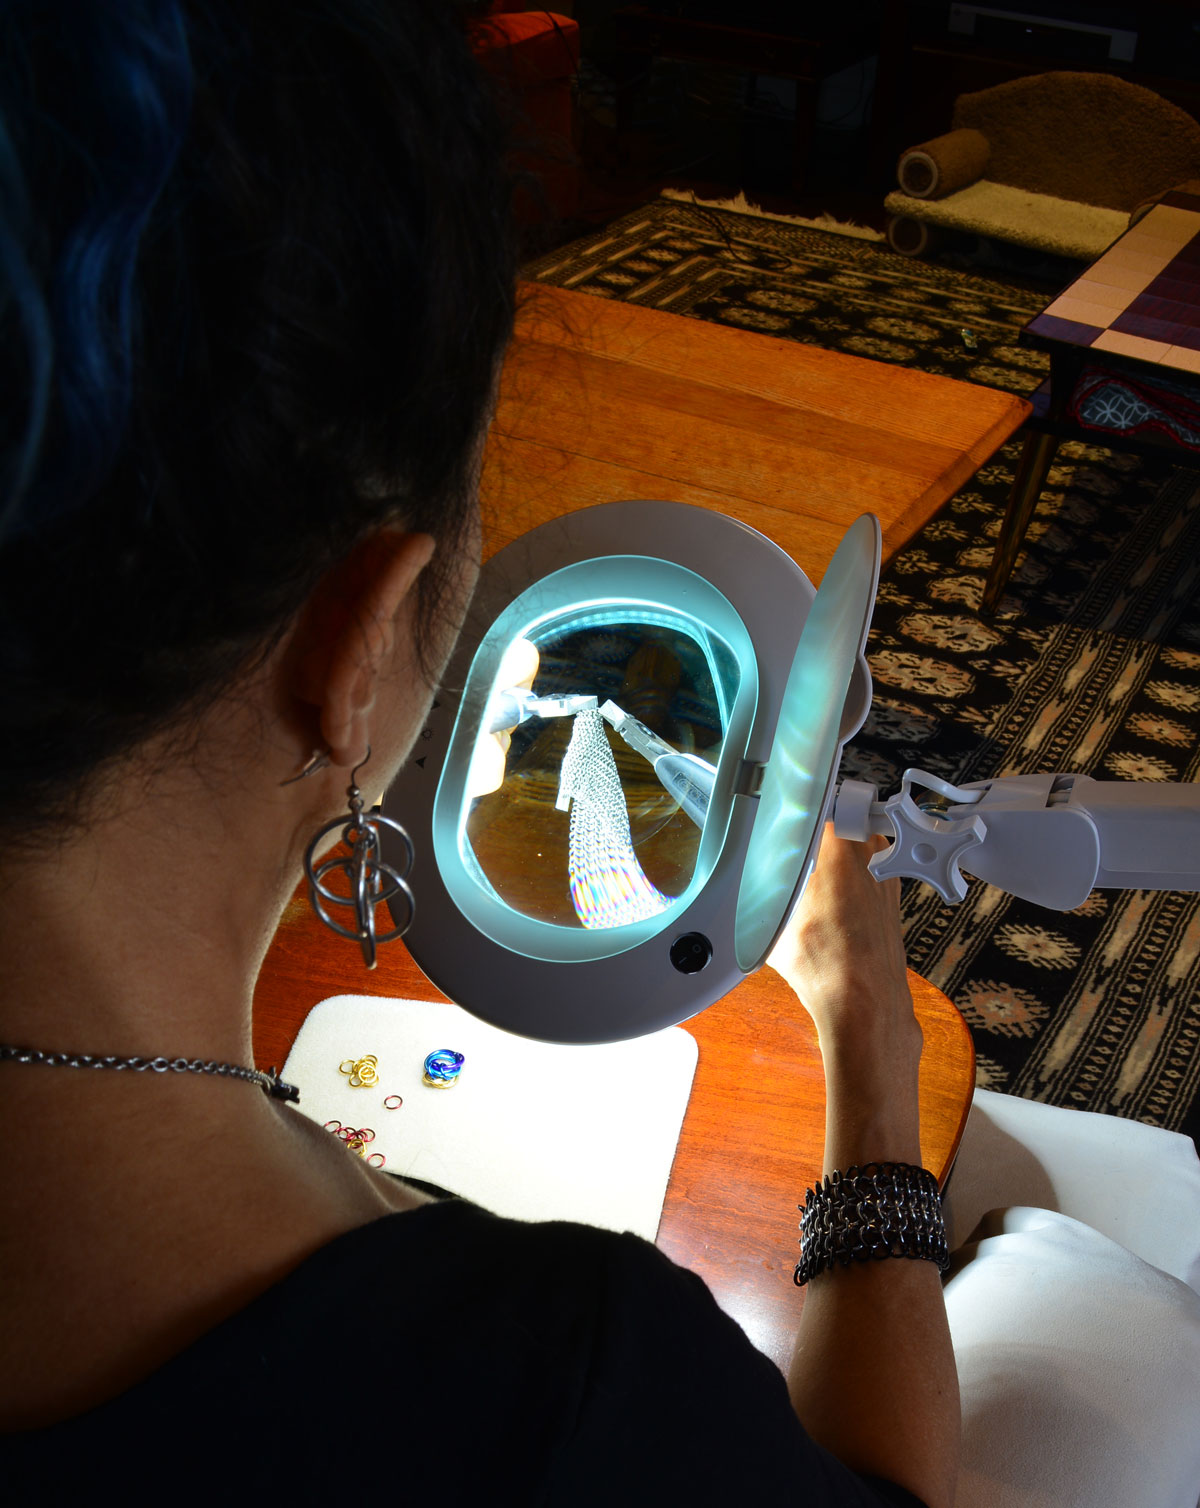 over the shoulder view of rebeca mojica making micromaille using brightech magnifier lamp